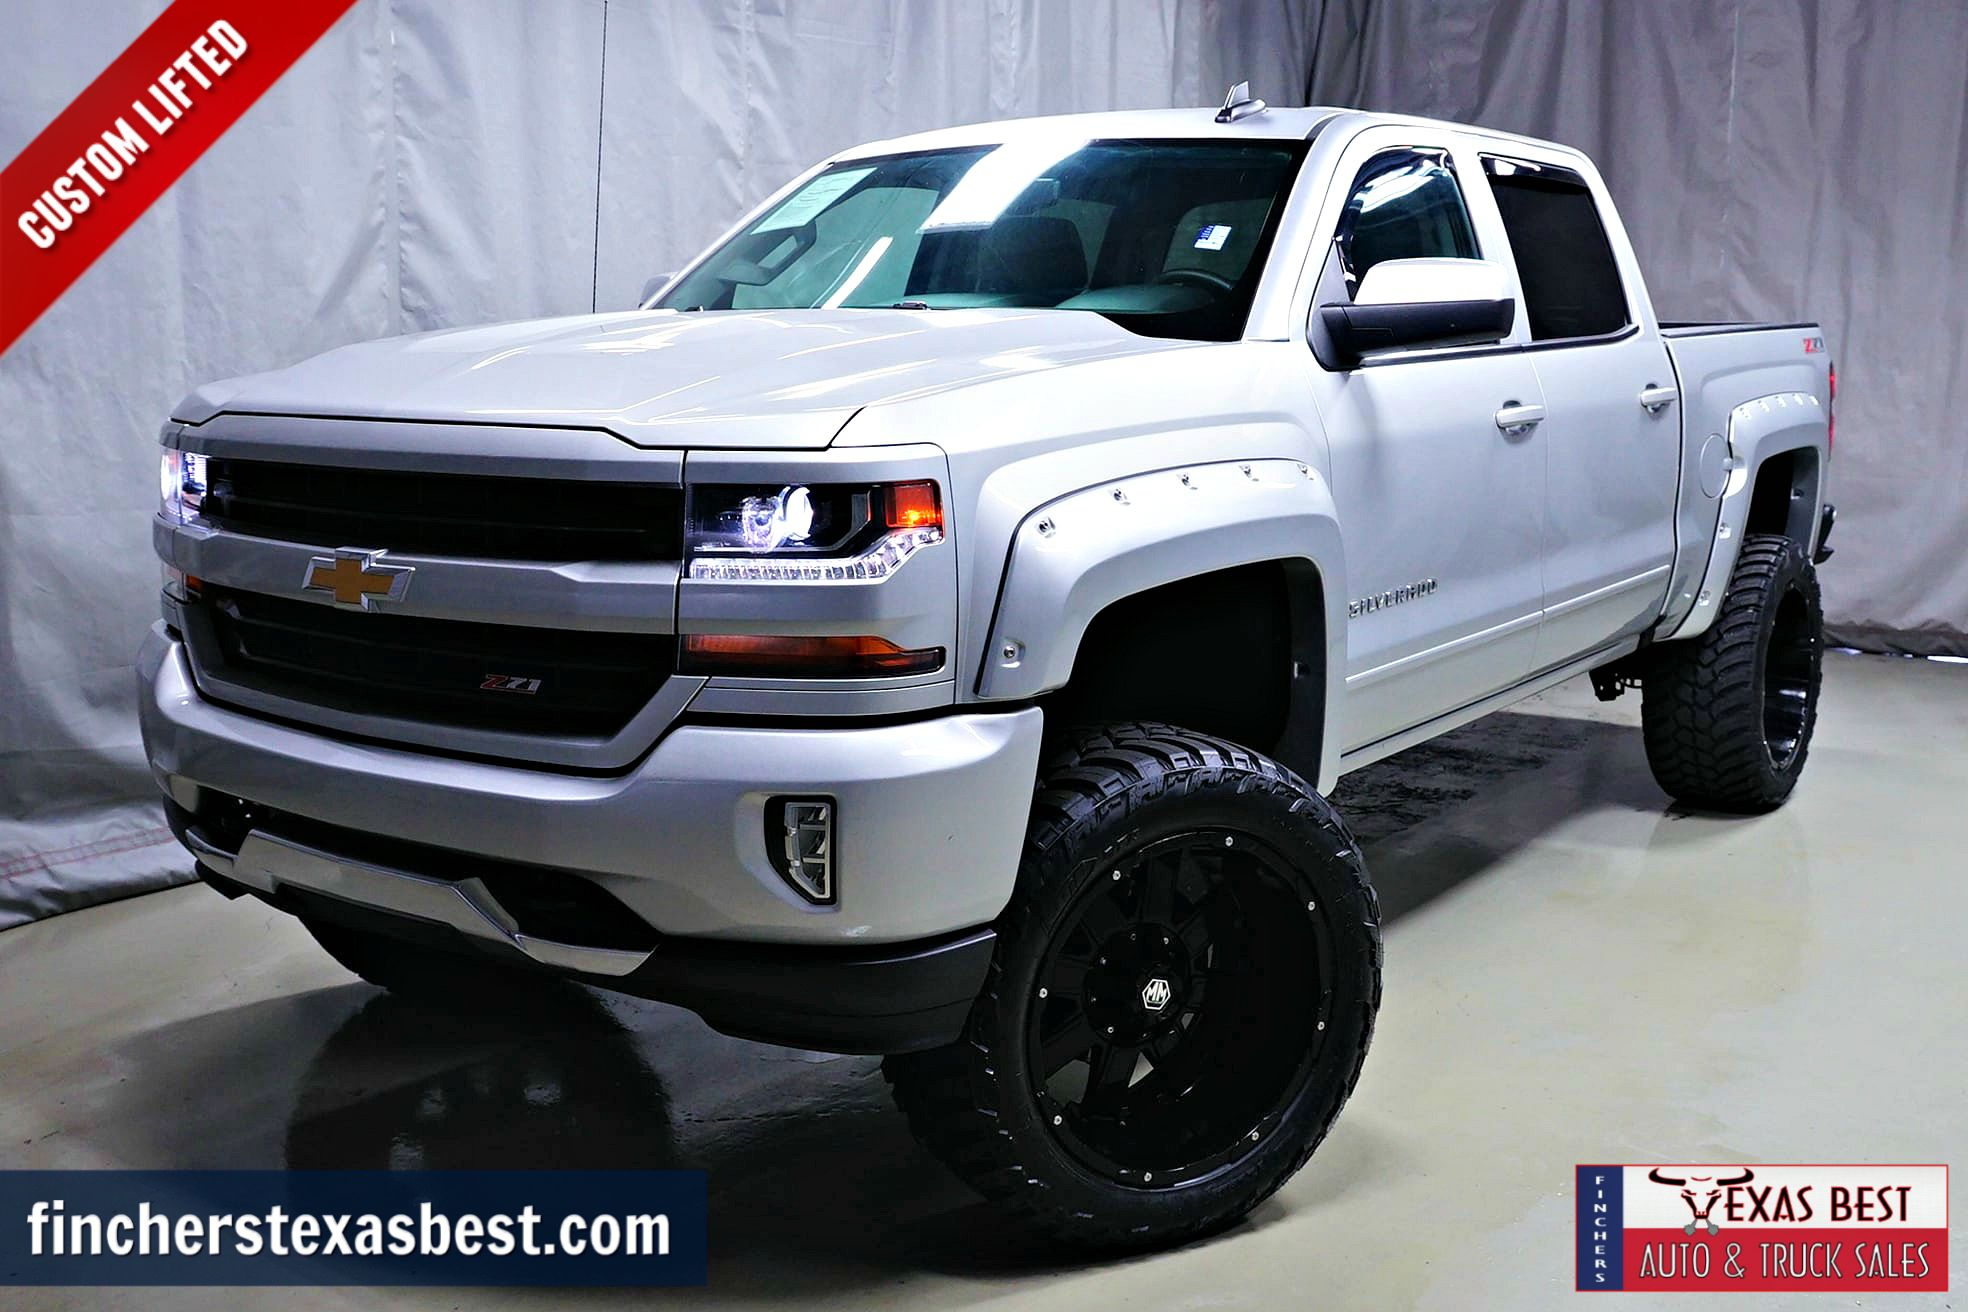 2017 Chevrolet Silverado 1500 Lt Custom Lifted Chevy Silverado